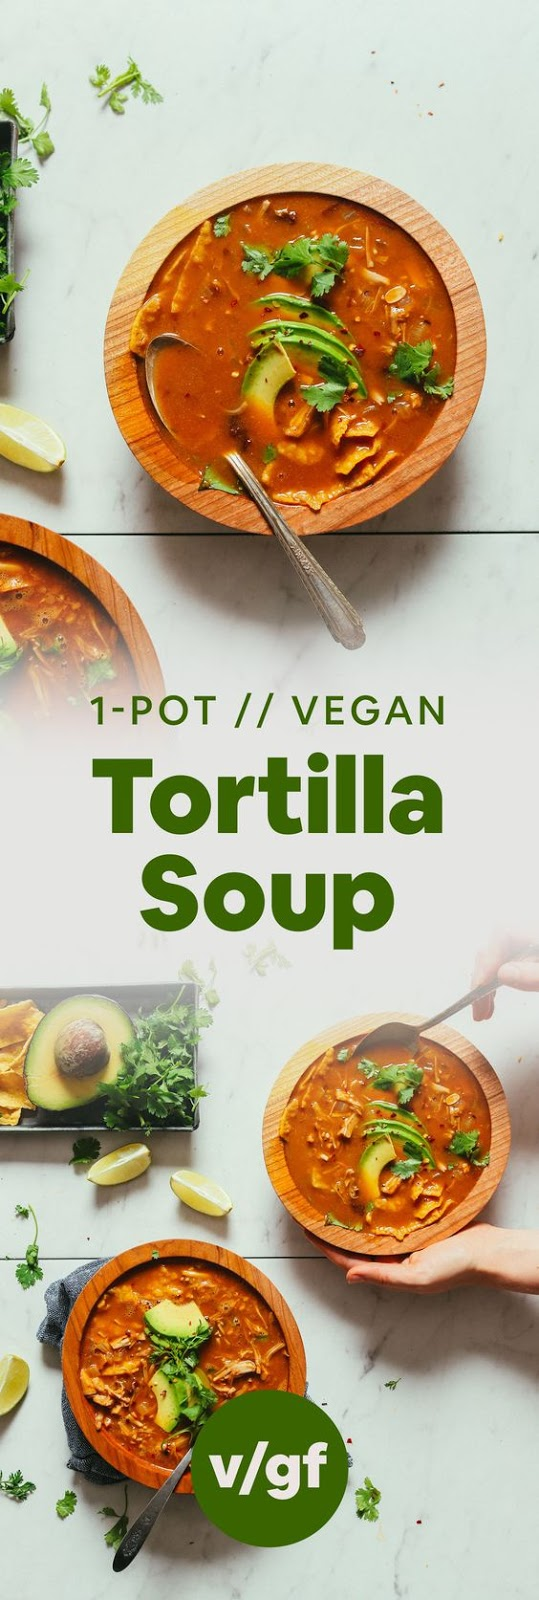 BROTHY Delicious Vegan Tortilla Soup with Jackfruit! 10 ingredients, BIG flavor, so satisfying! #dinner #mexican #tortilla #vegan #soup #minimalistbaker